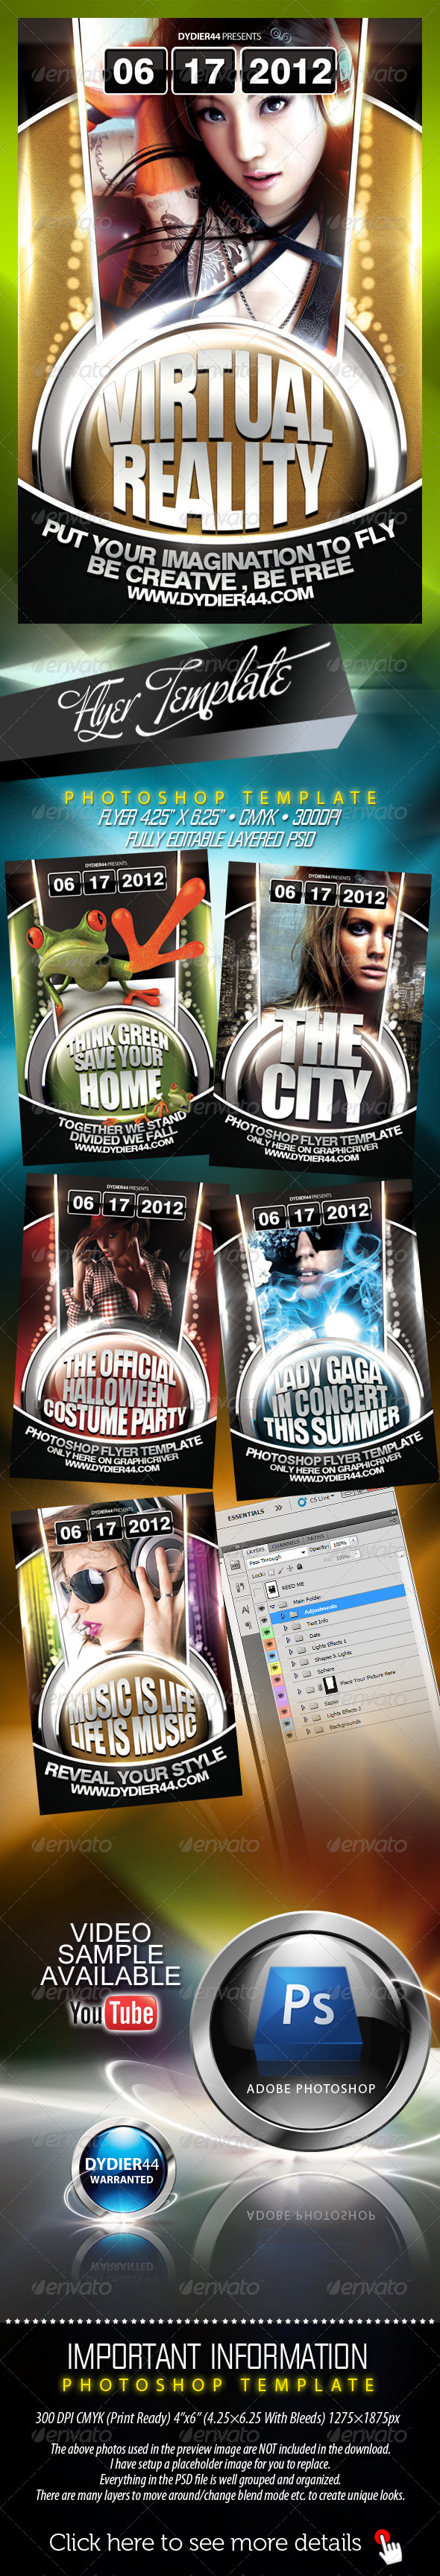 Virtual Reality Flyer Template 4x6